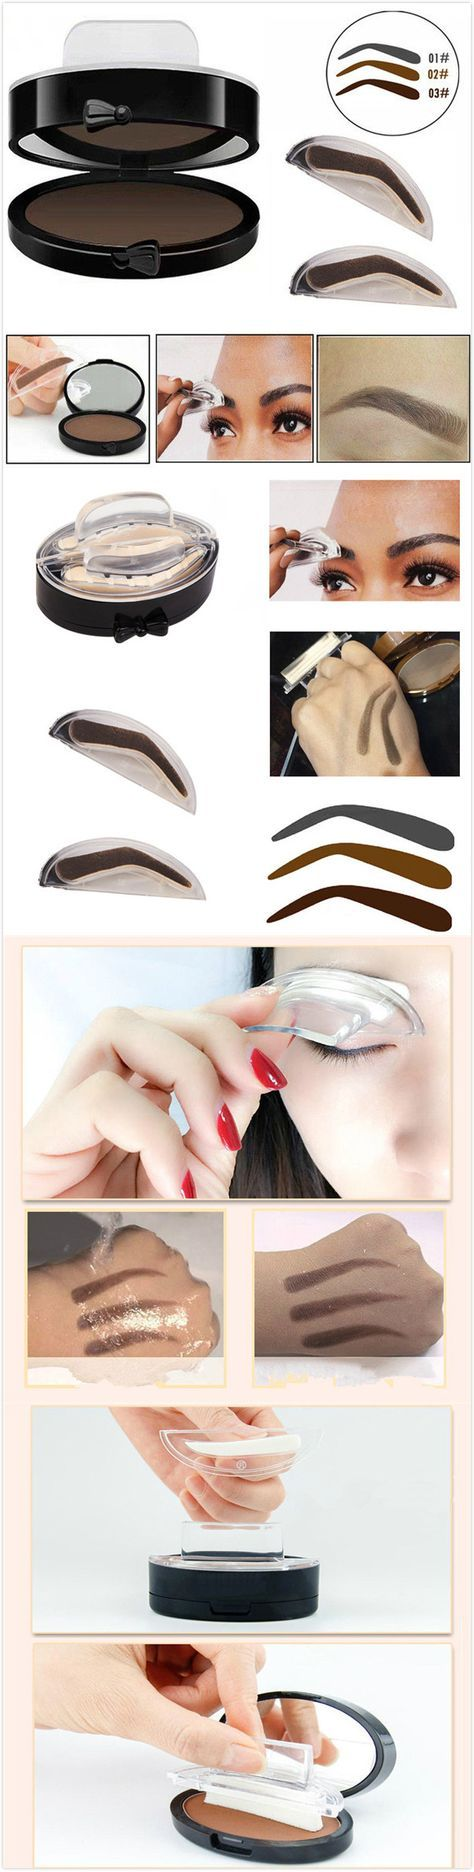 659 Eyebrow Stamps Kit Pigments Black Brown Brows Mineral Powder